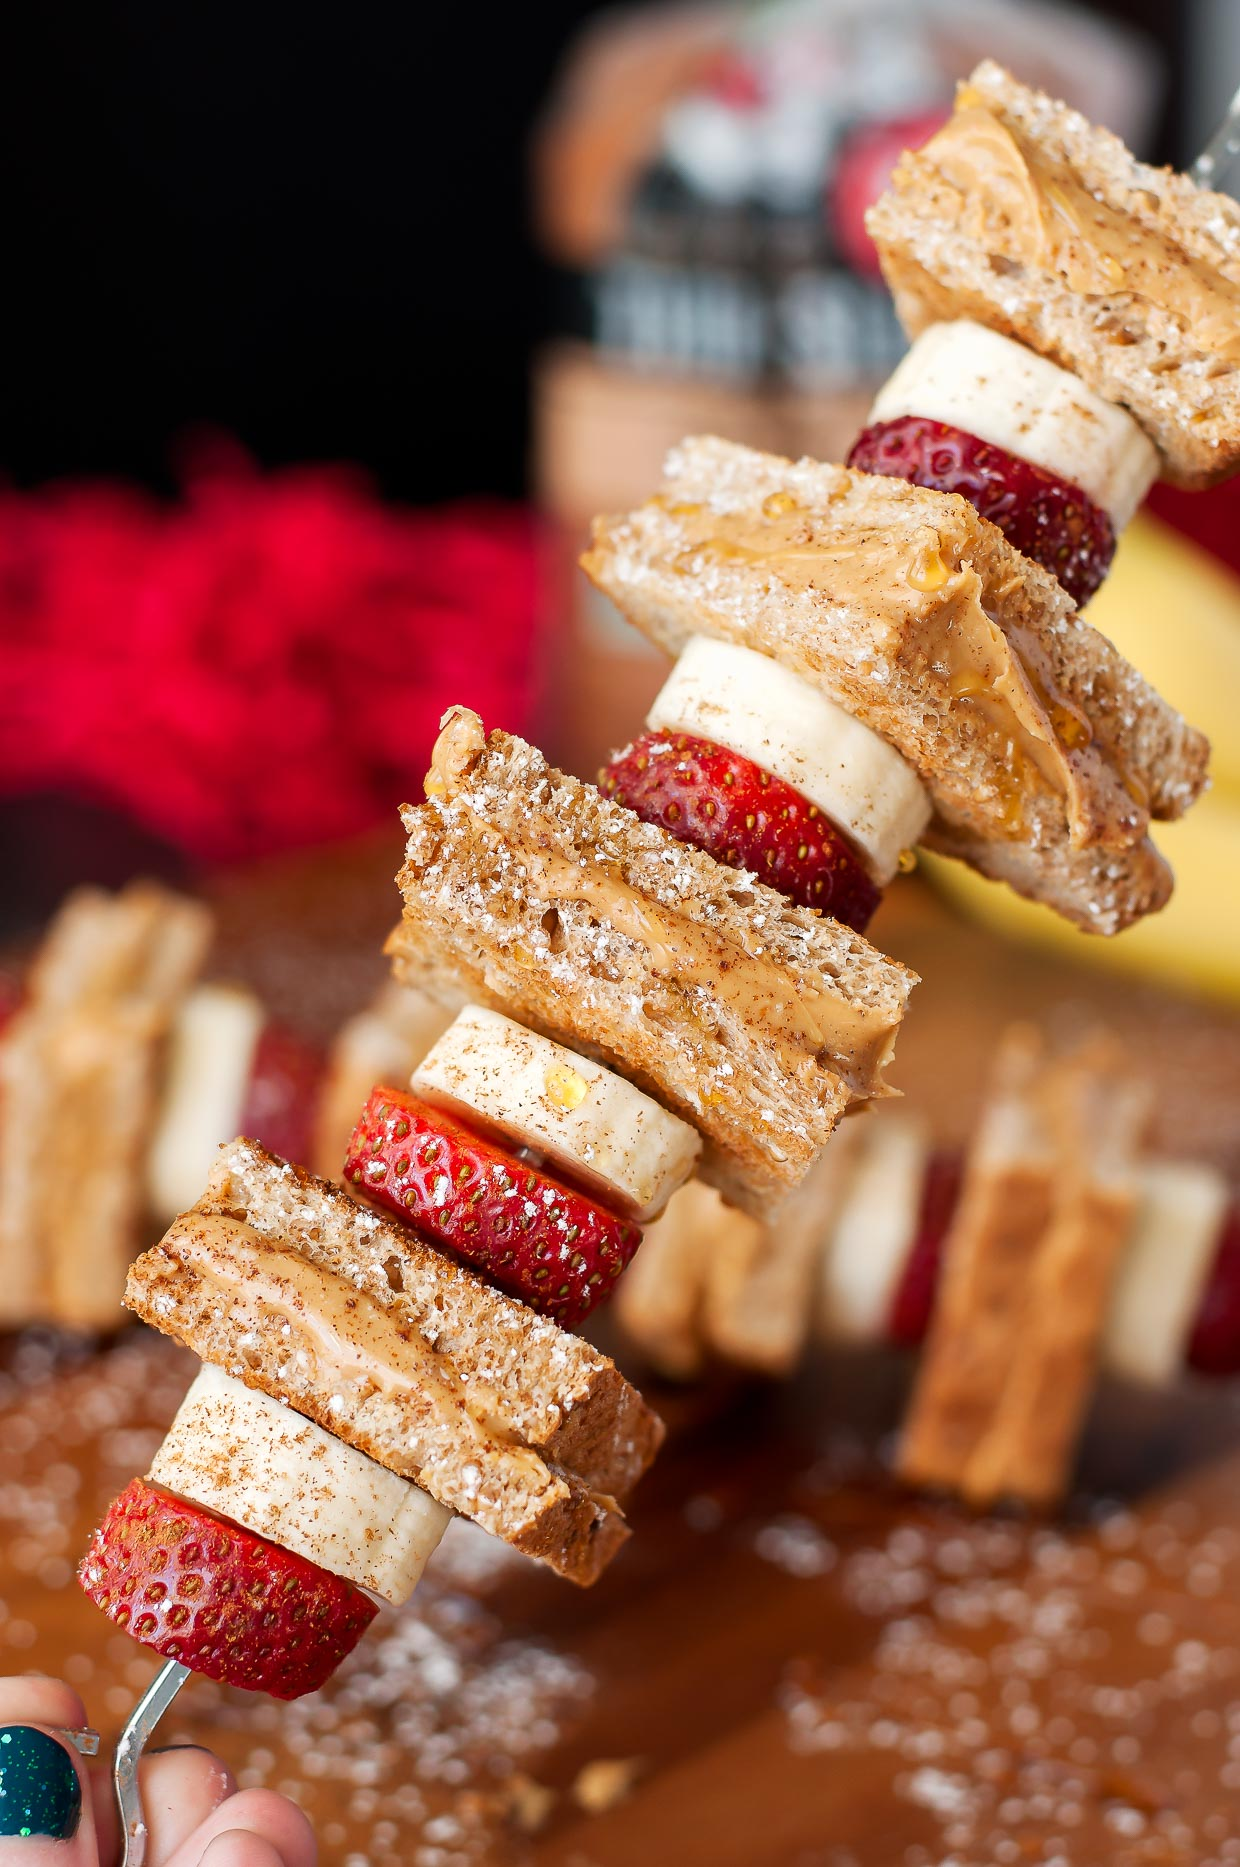 Strawberry Banana Peanut Butter Toast on a Stick